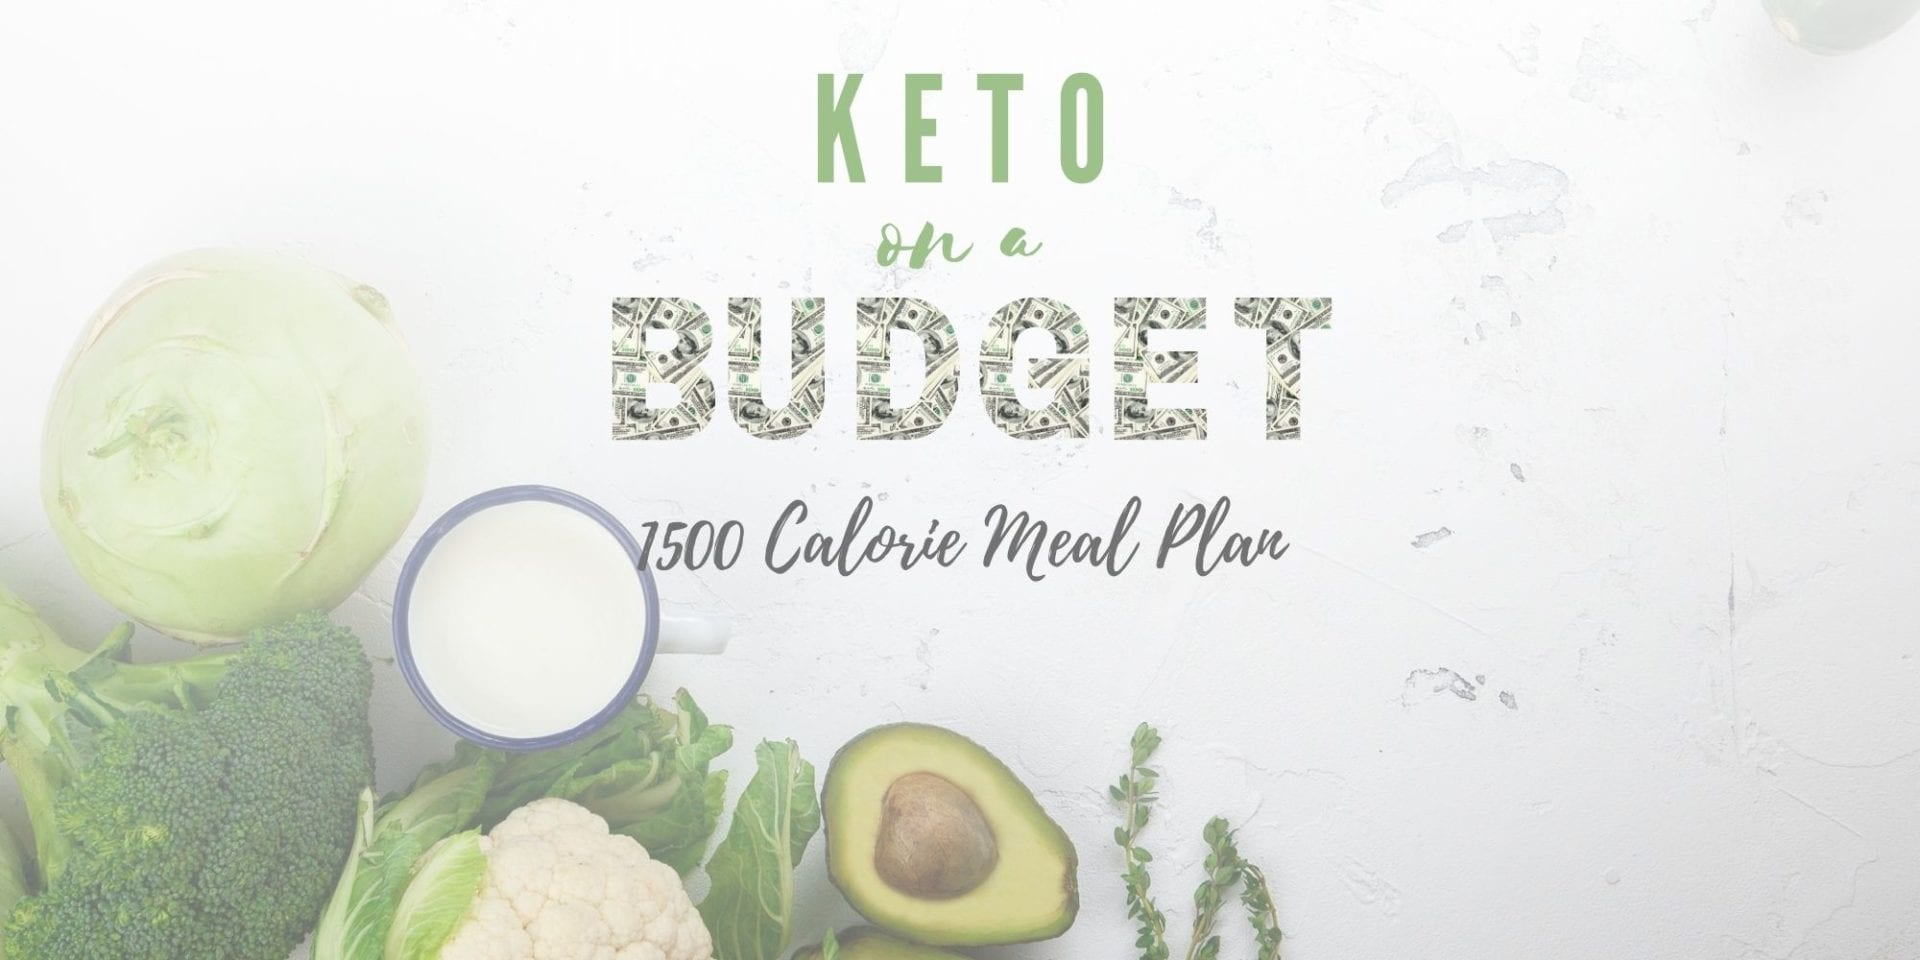 Keto On A Budget 1,500 Calorie Meal Plan